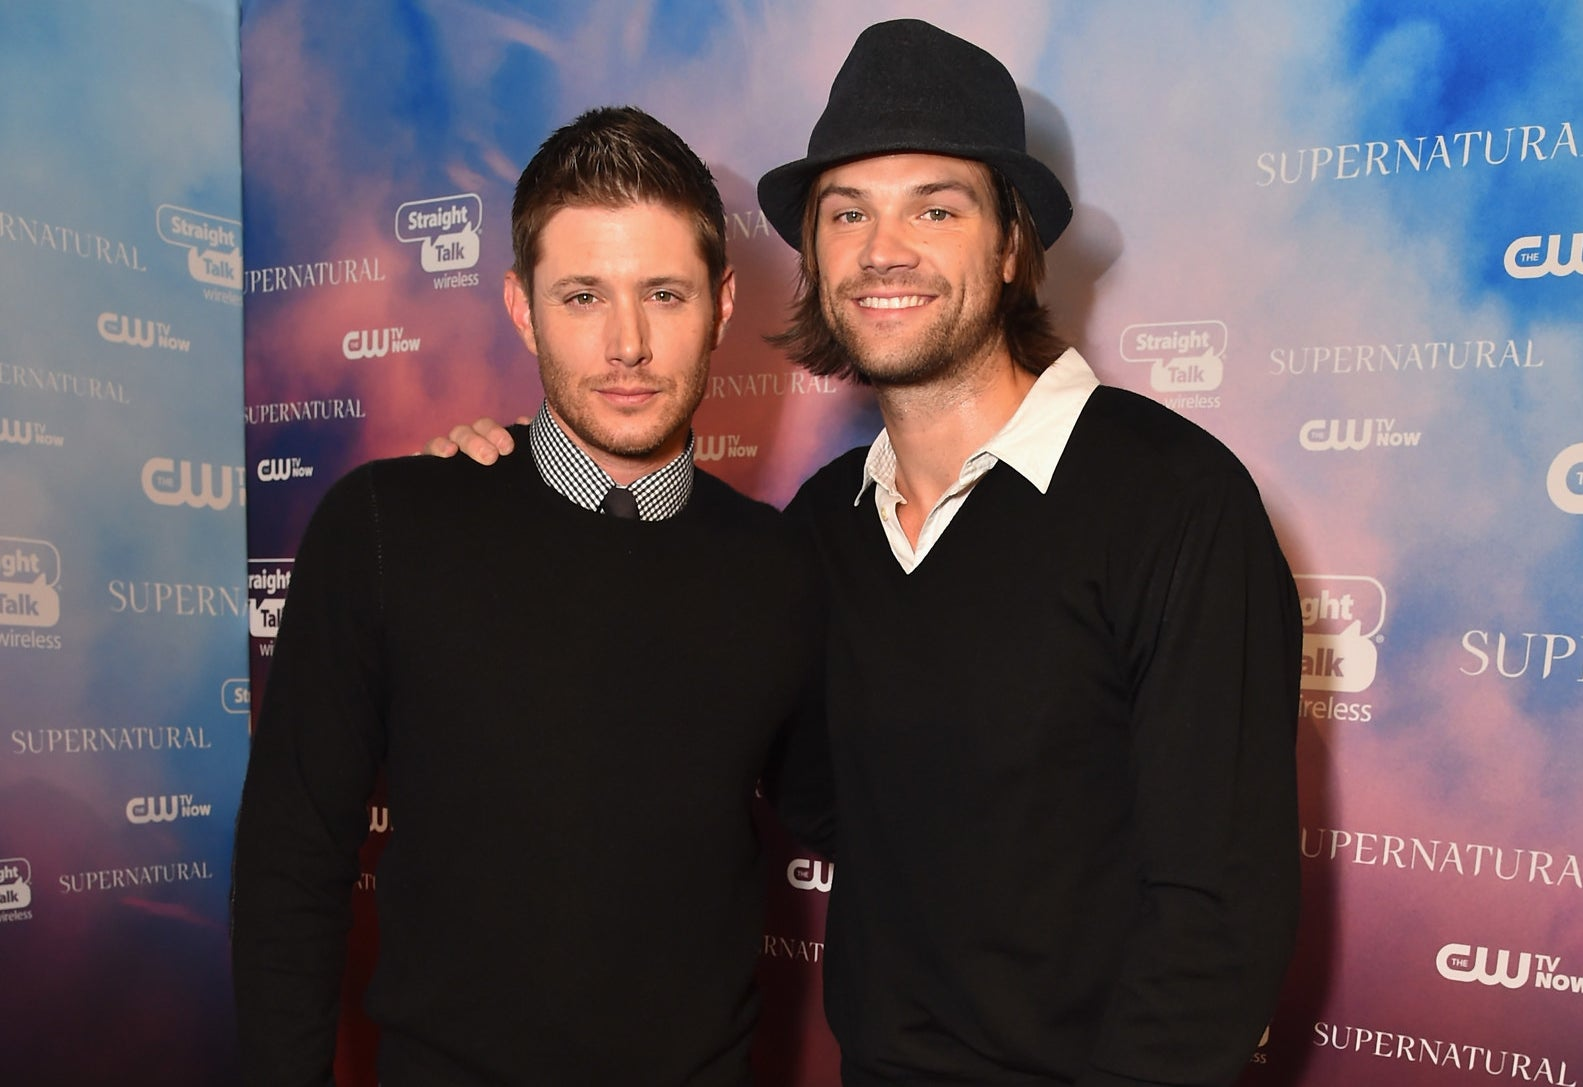 They star in the CW's hit show Supernatural as crime-fighting brothers who travel the country to hunt down evil creatures.